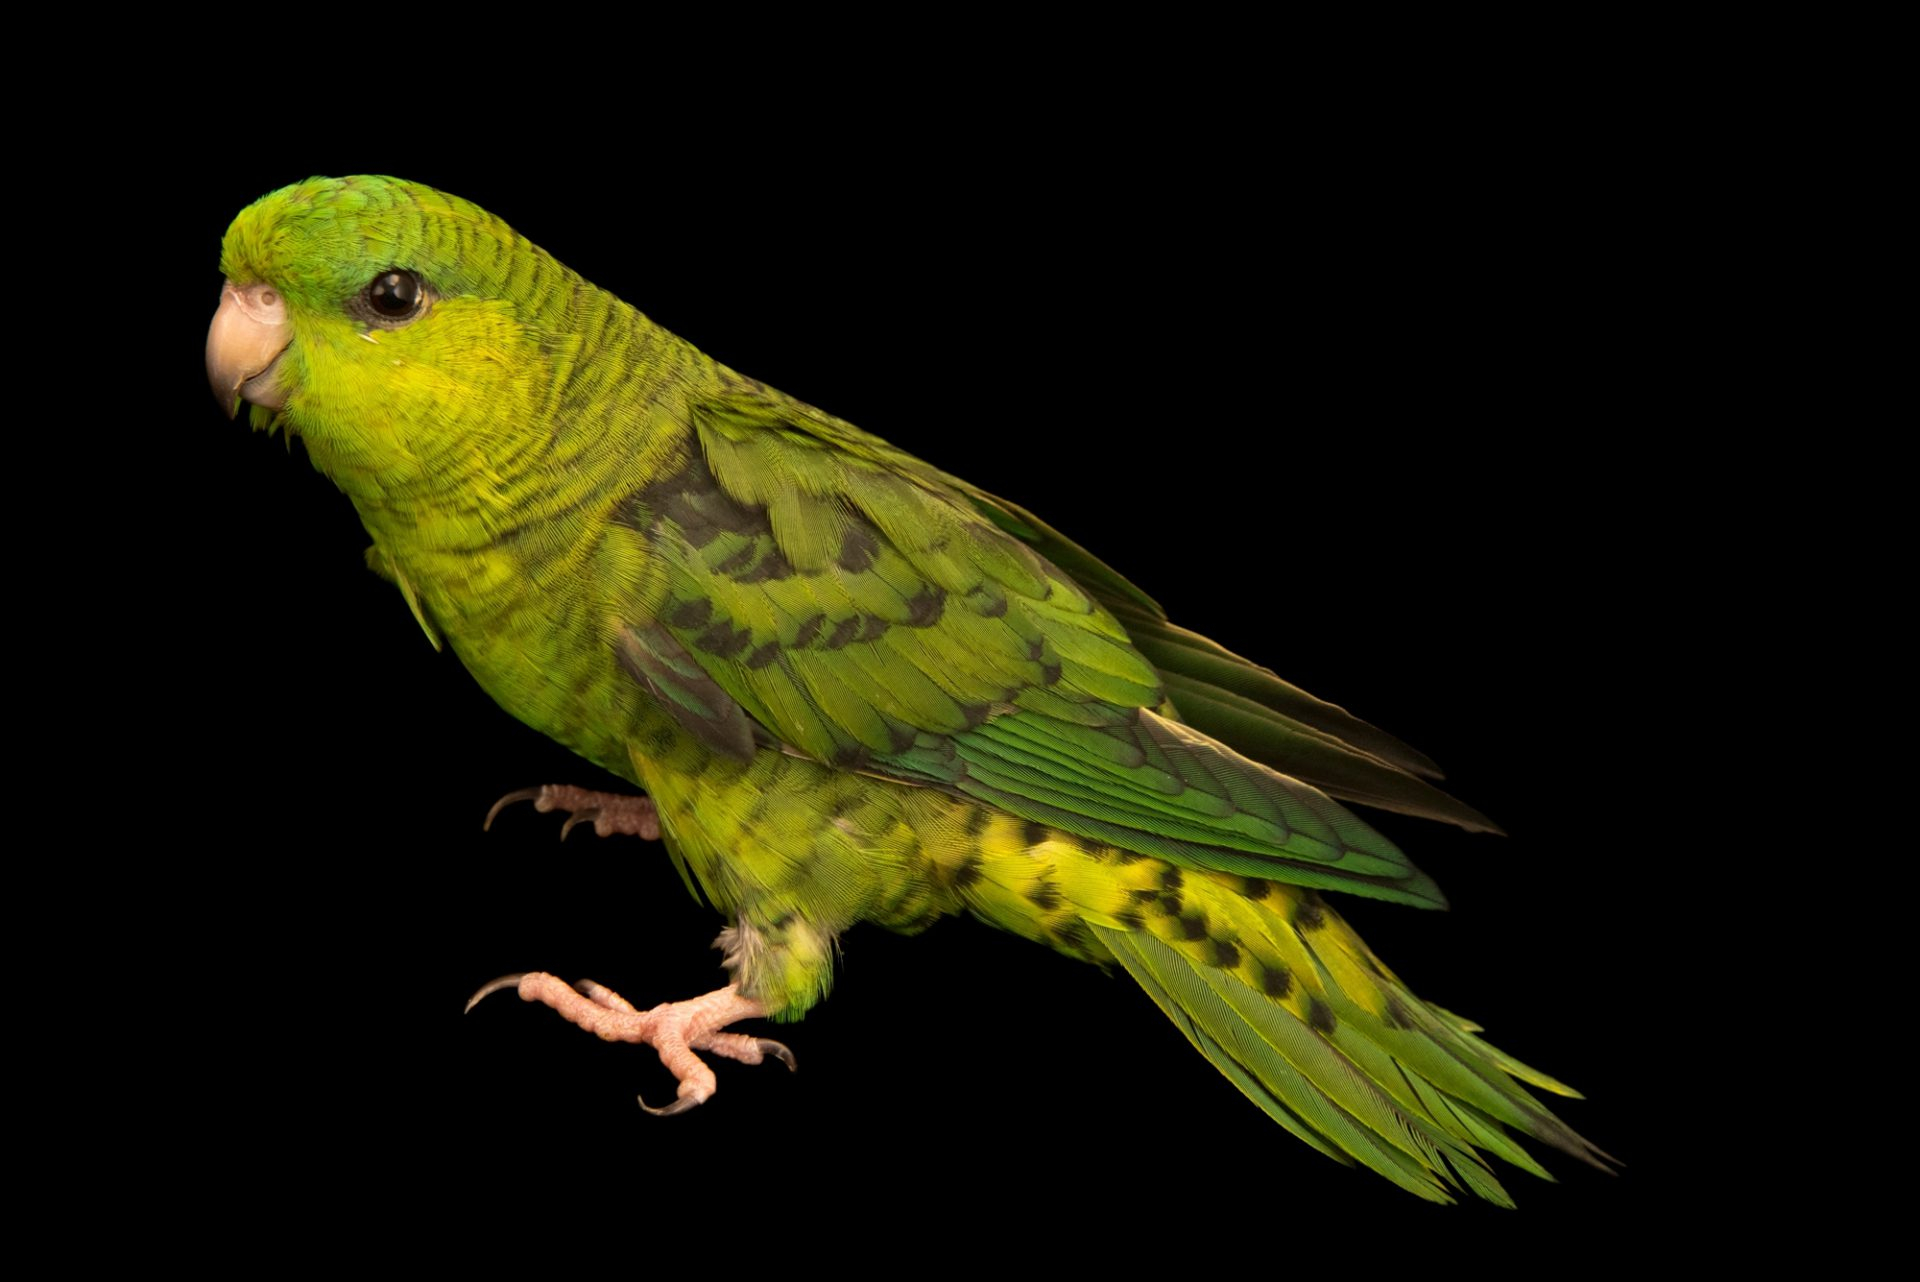 Photo: Barred parakeet, Bolborhynchus lineola, at Loro Parque Fundacion.